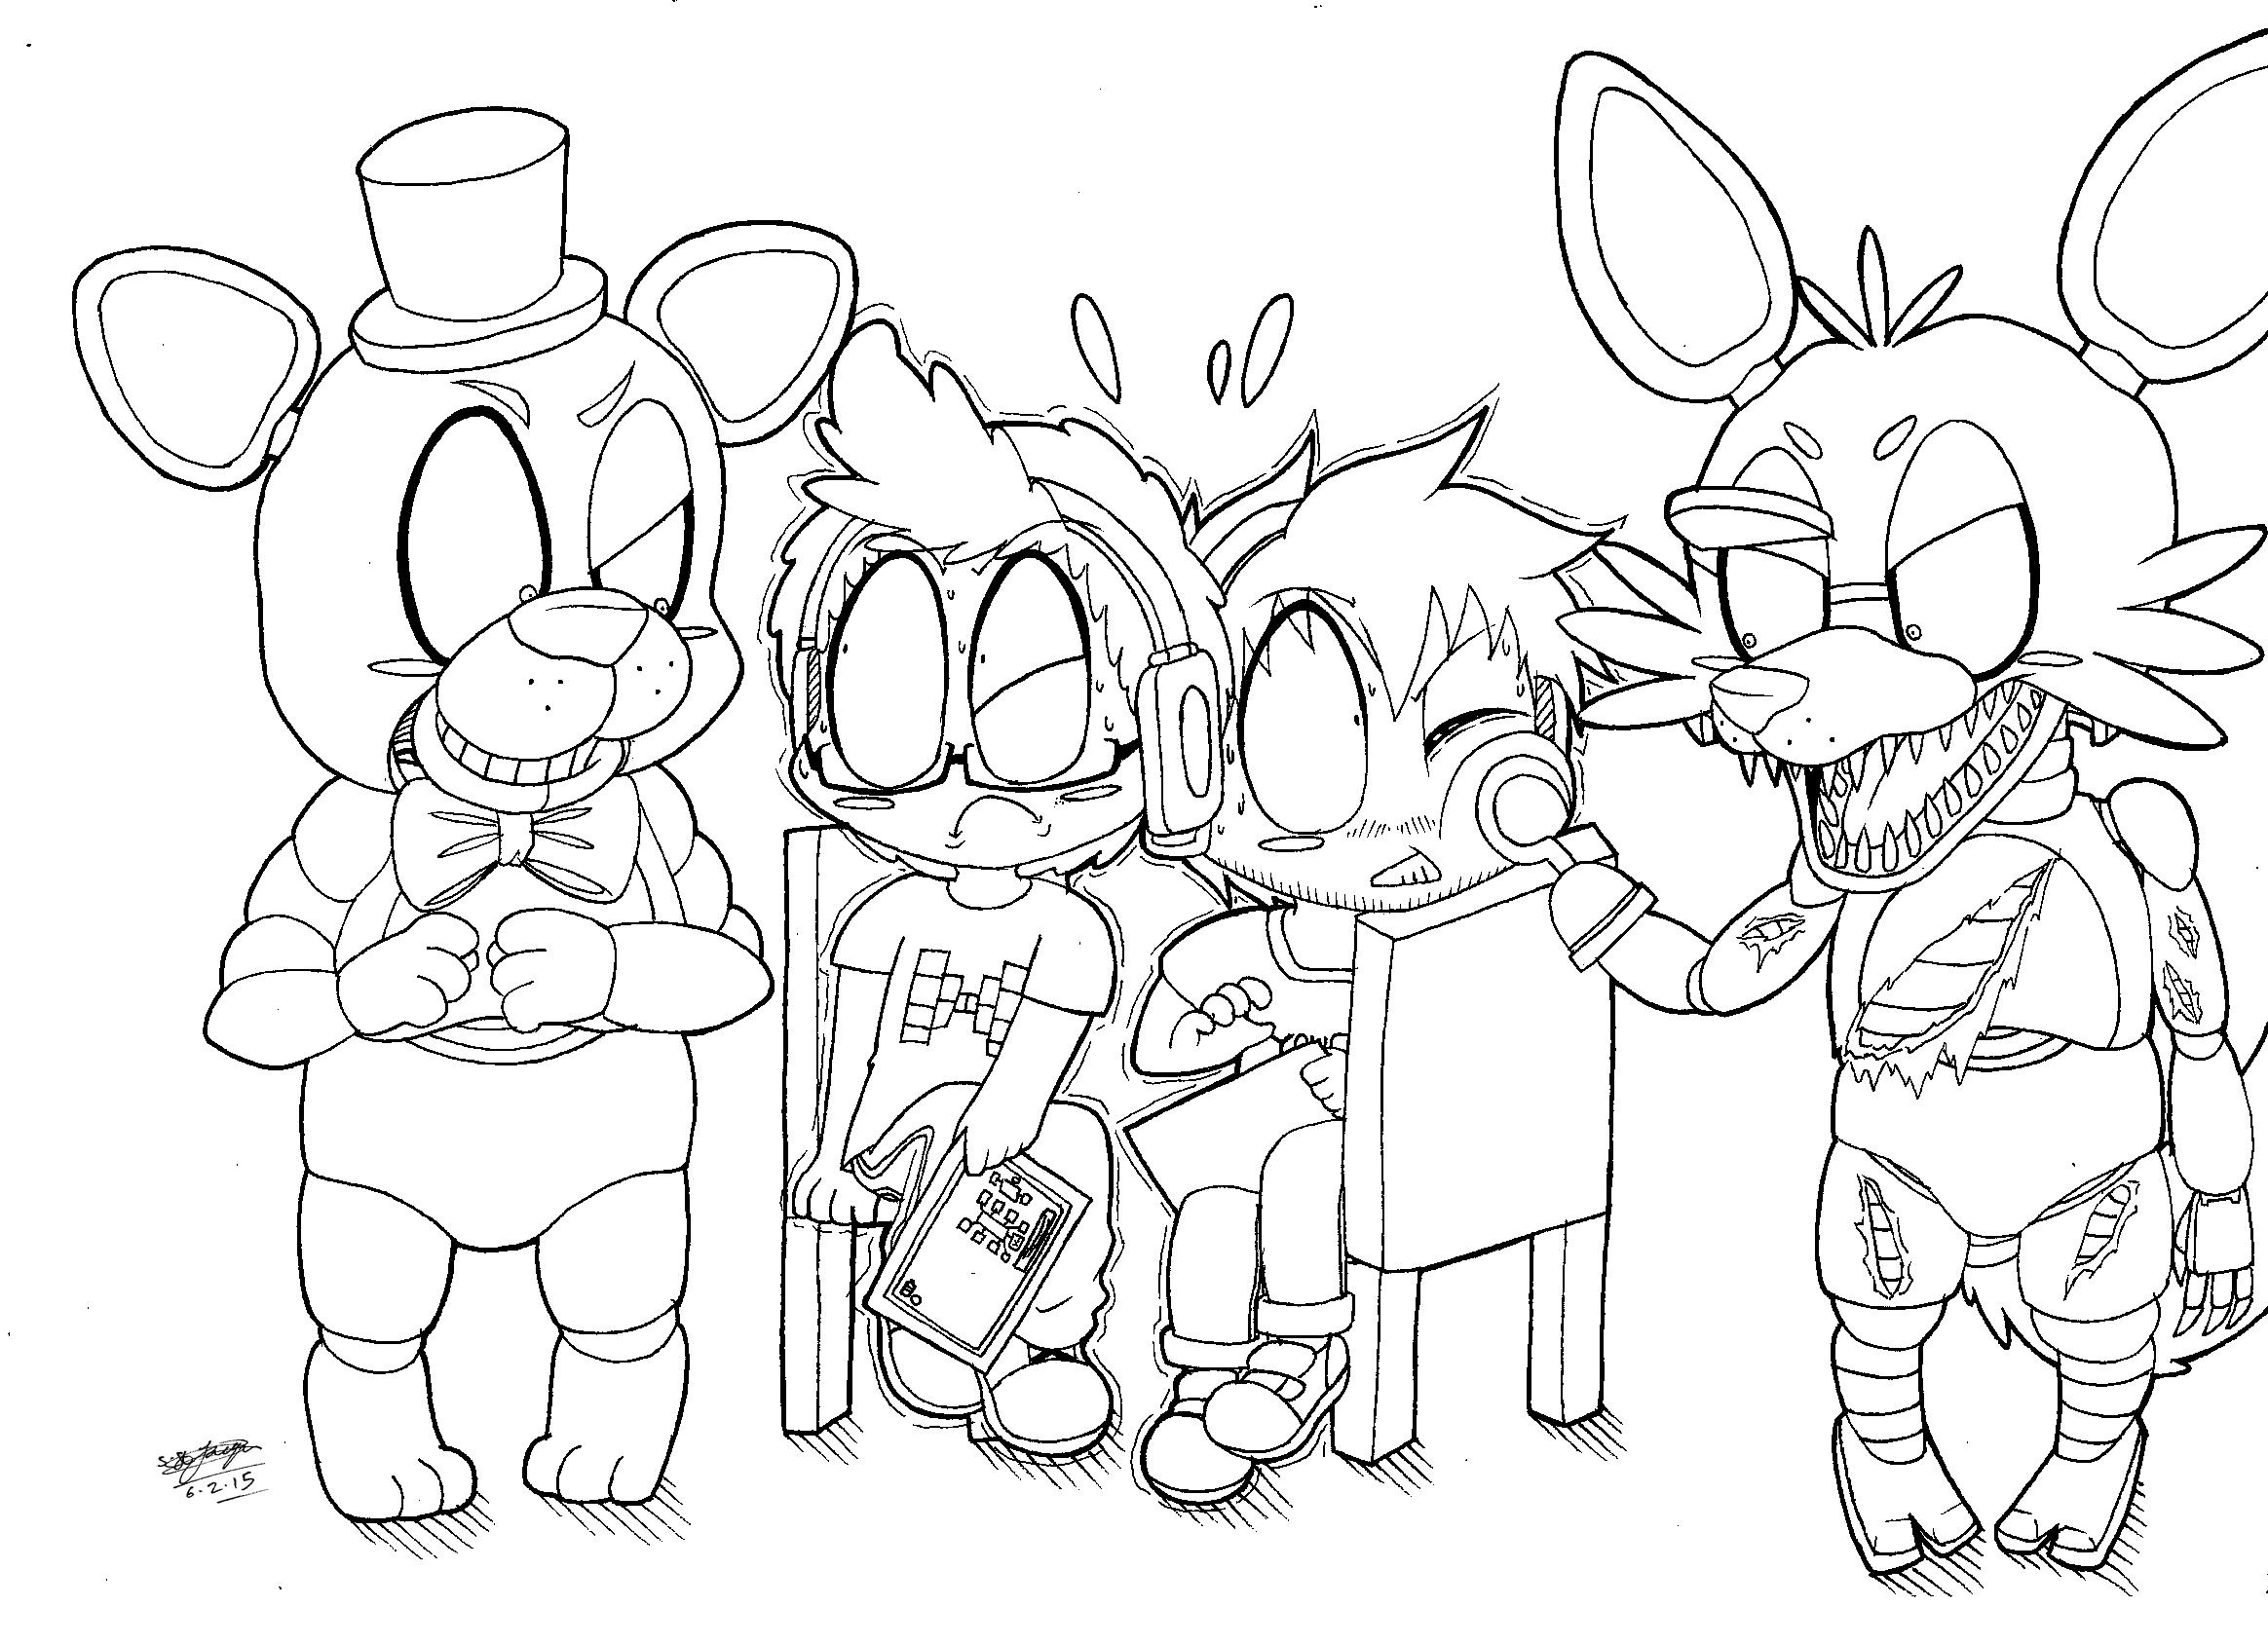 Fnaf chibi freddy and foxy meet chibi yamimash and for Fnaf anime coloring pages